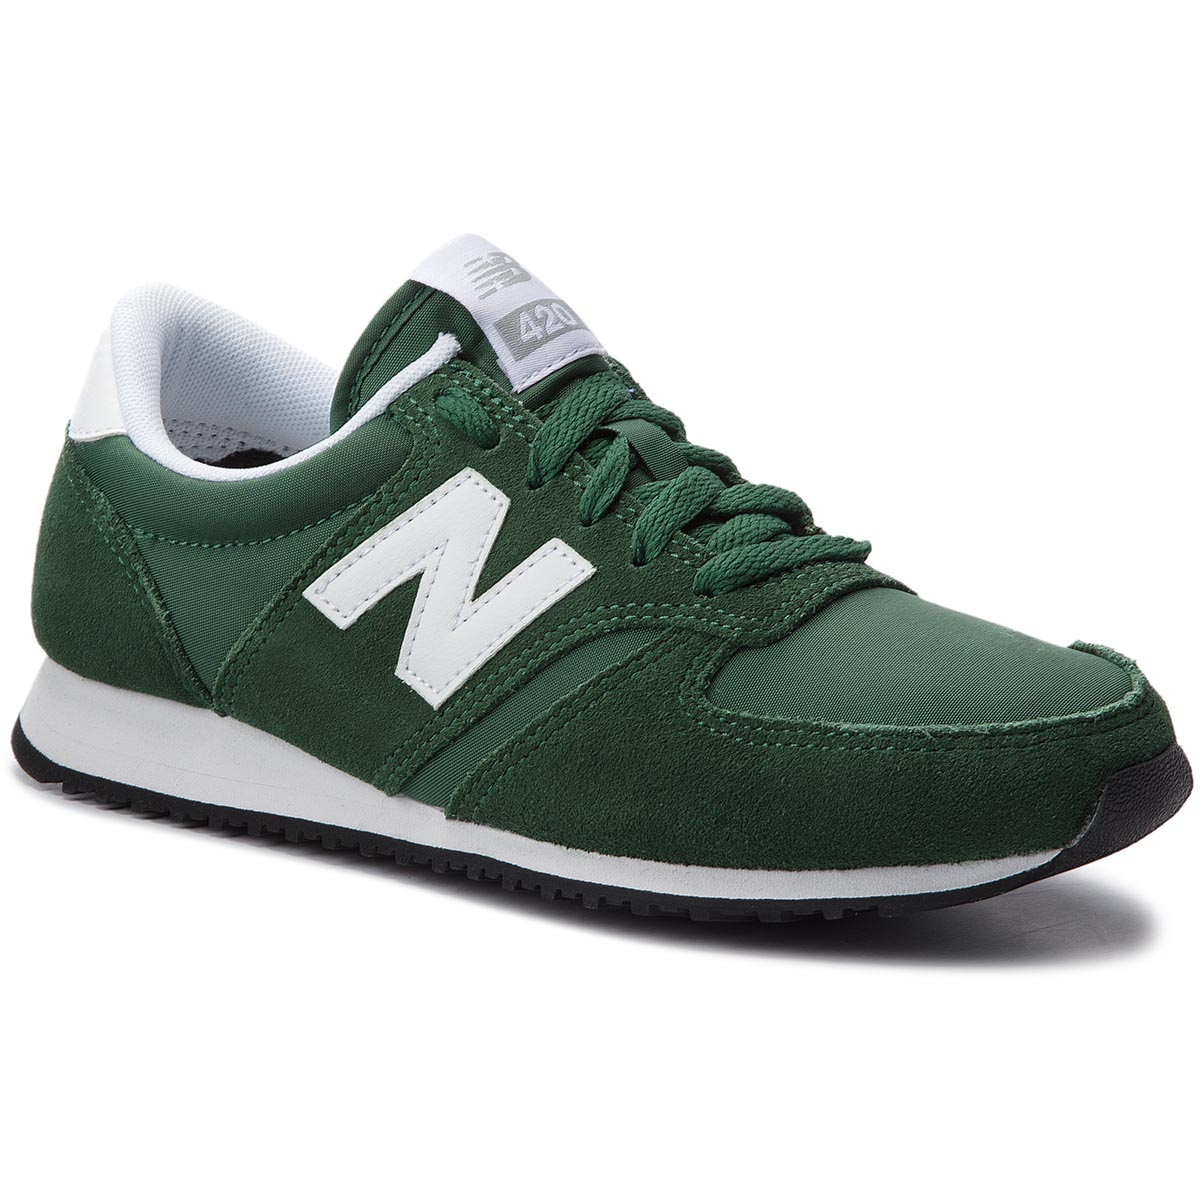 Sneakersy NEW BALANCE - U420GWN Zielony